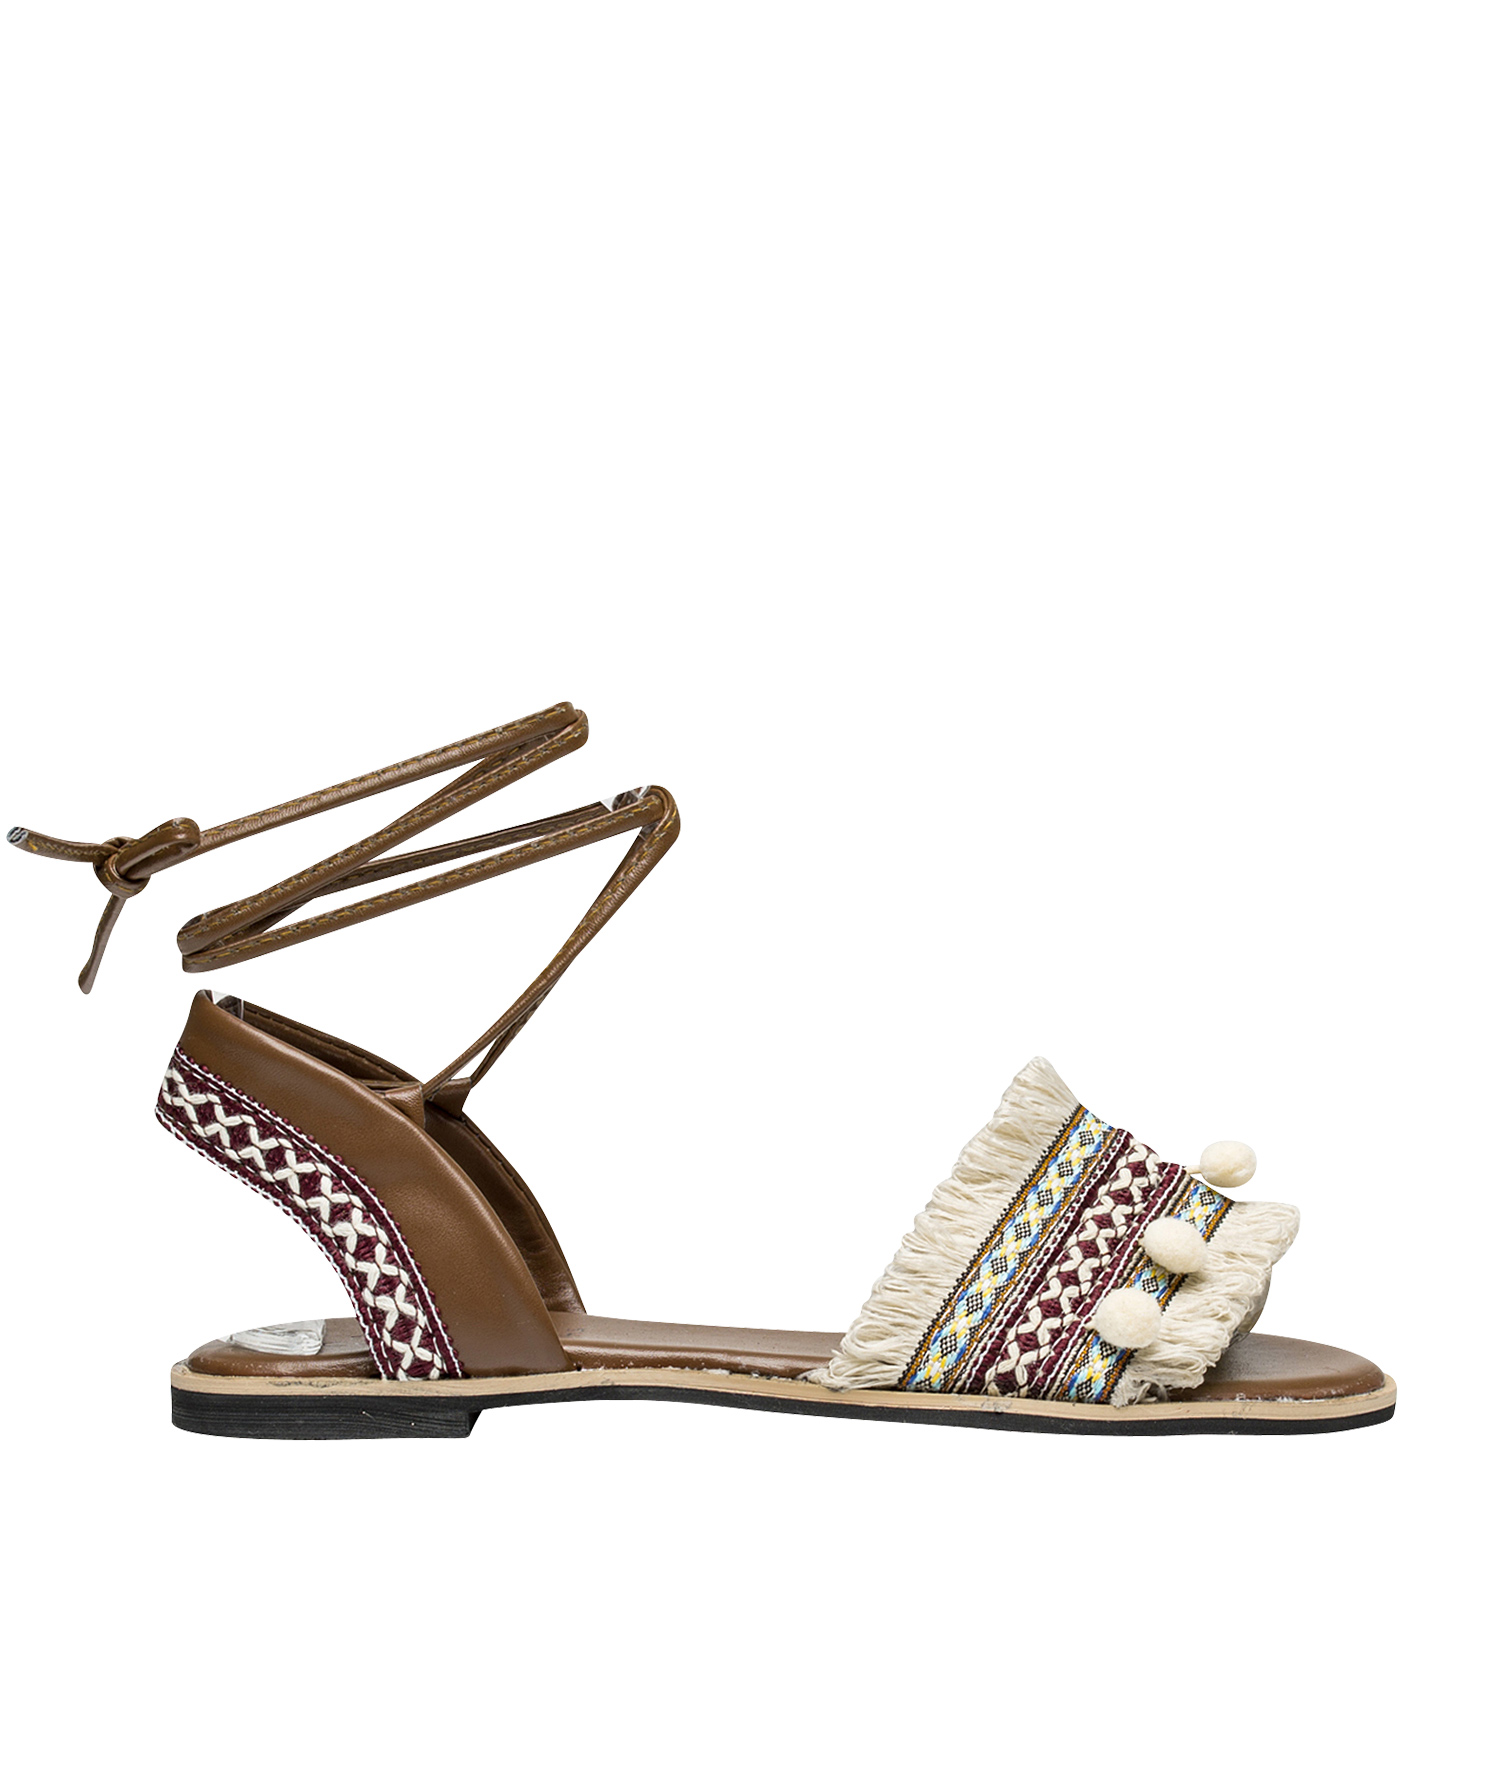 a51358e1ea707 Embroidered Ankle Wrap Tie Flat Sandals